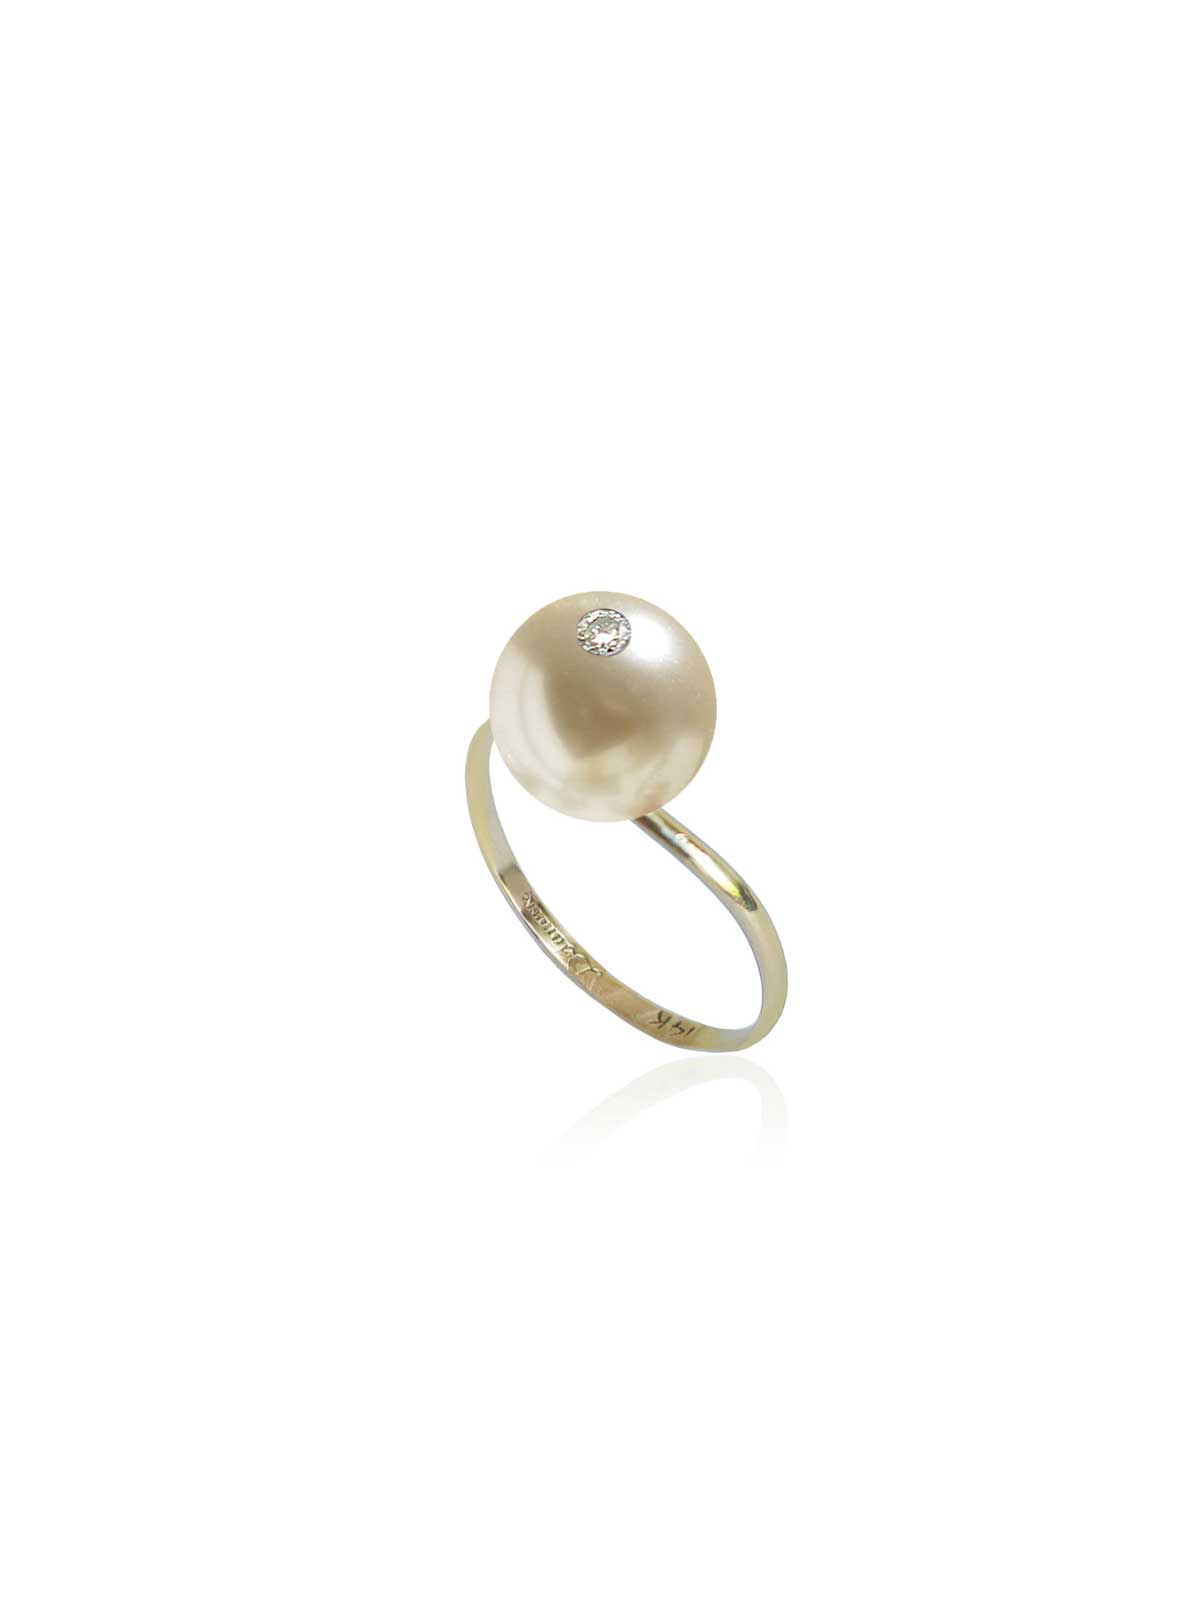 porcelain ring white South Sea Pearl Diamond 14K yellow gold